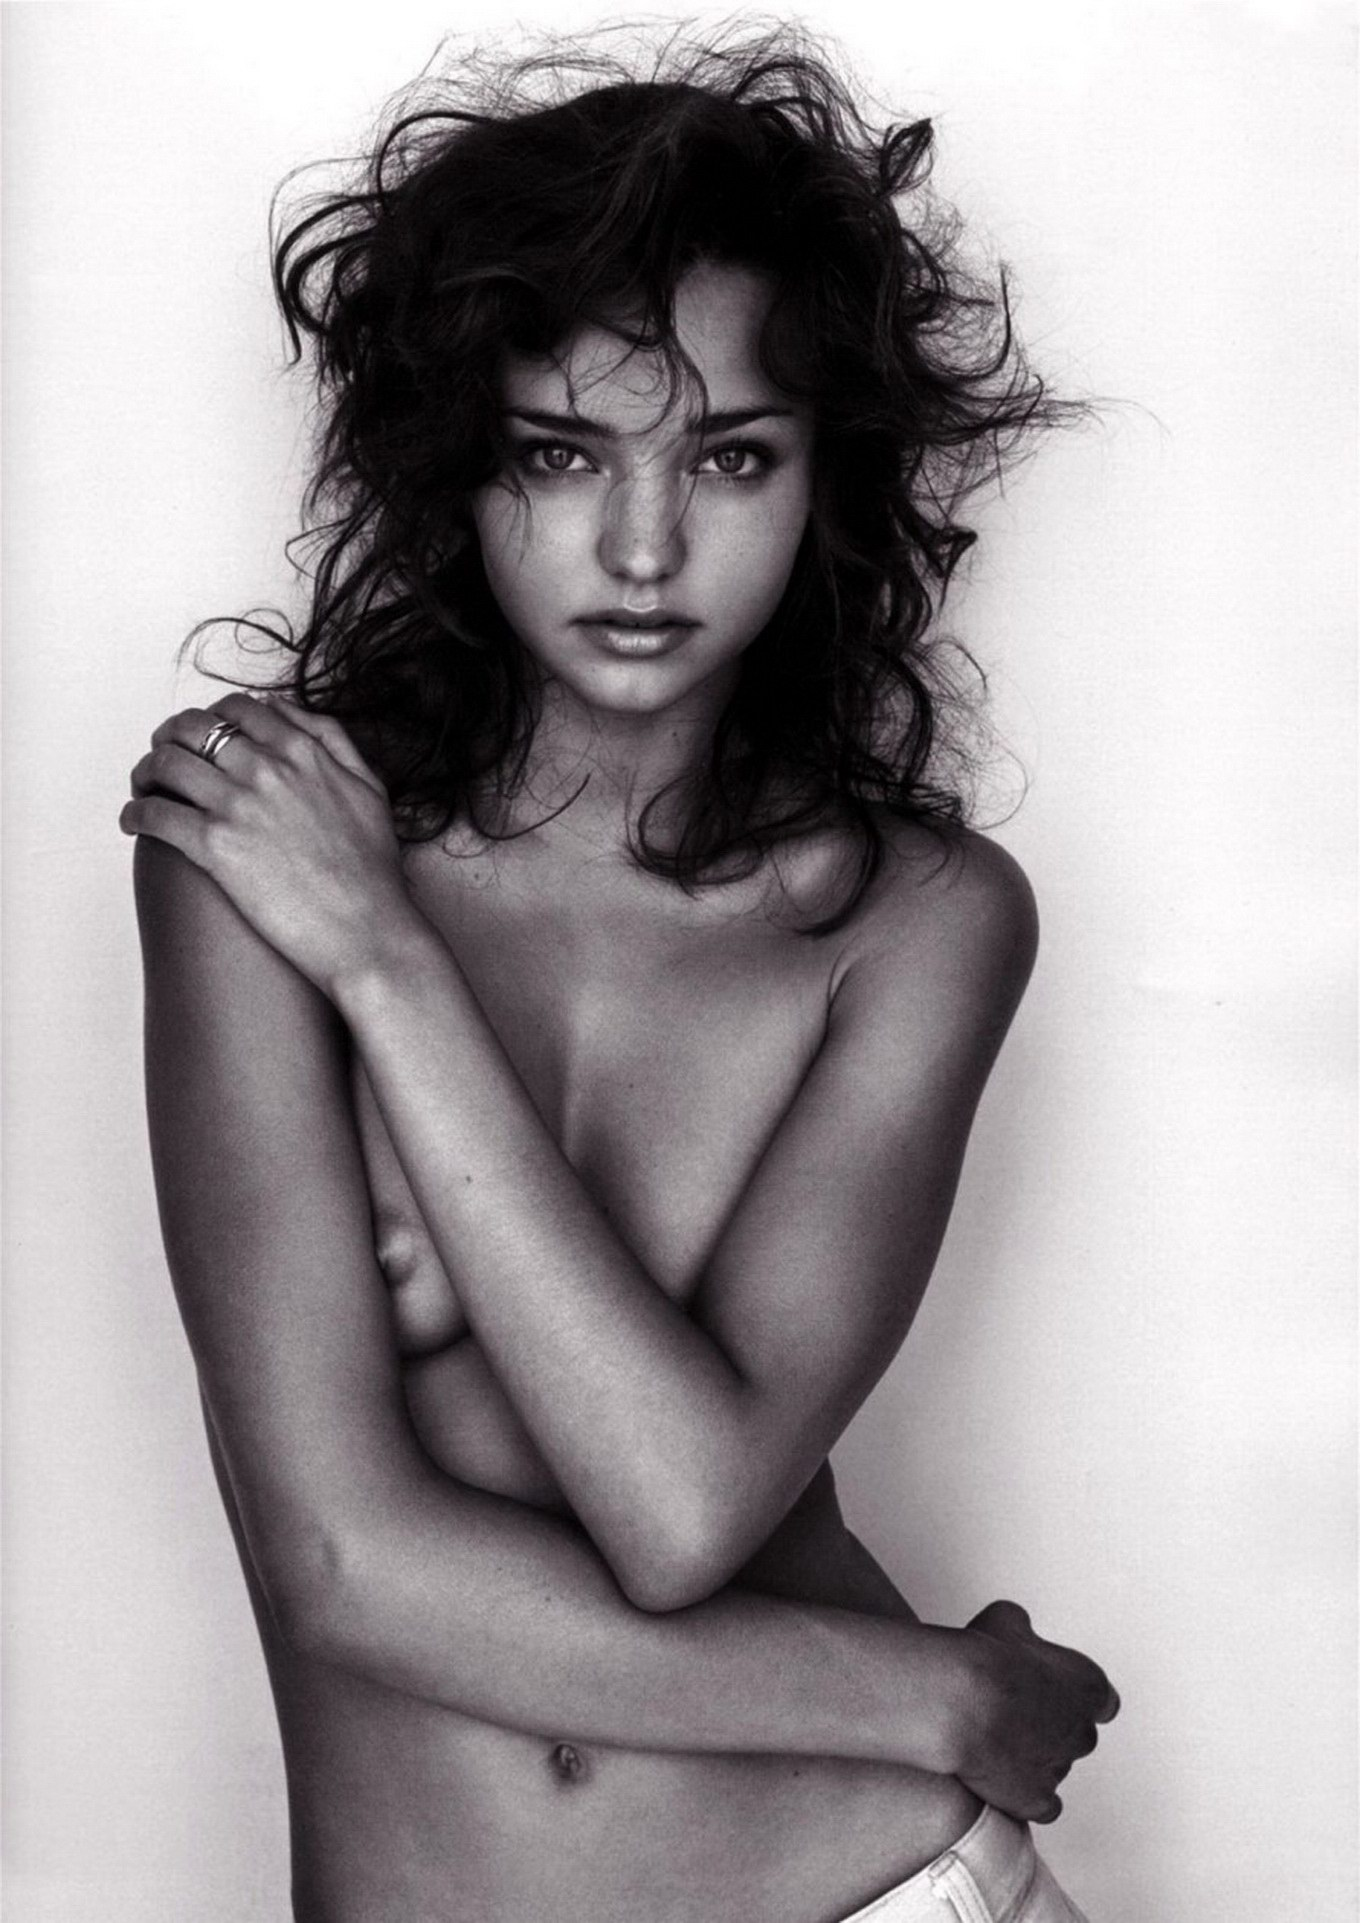 miranda kerr fully nude in v2 photoshoot by james russell